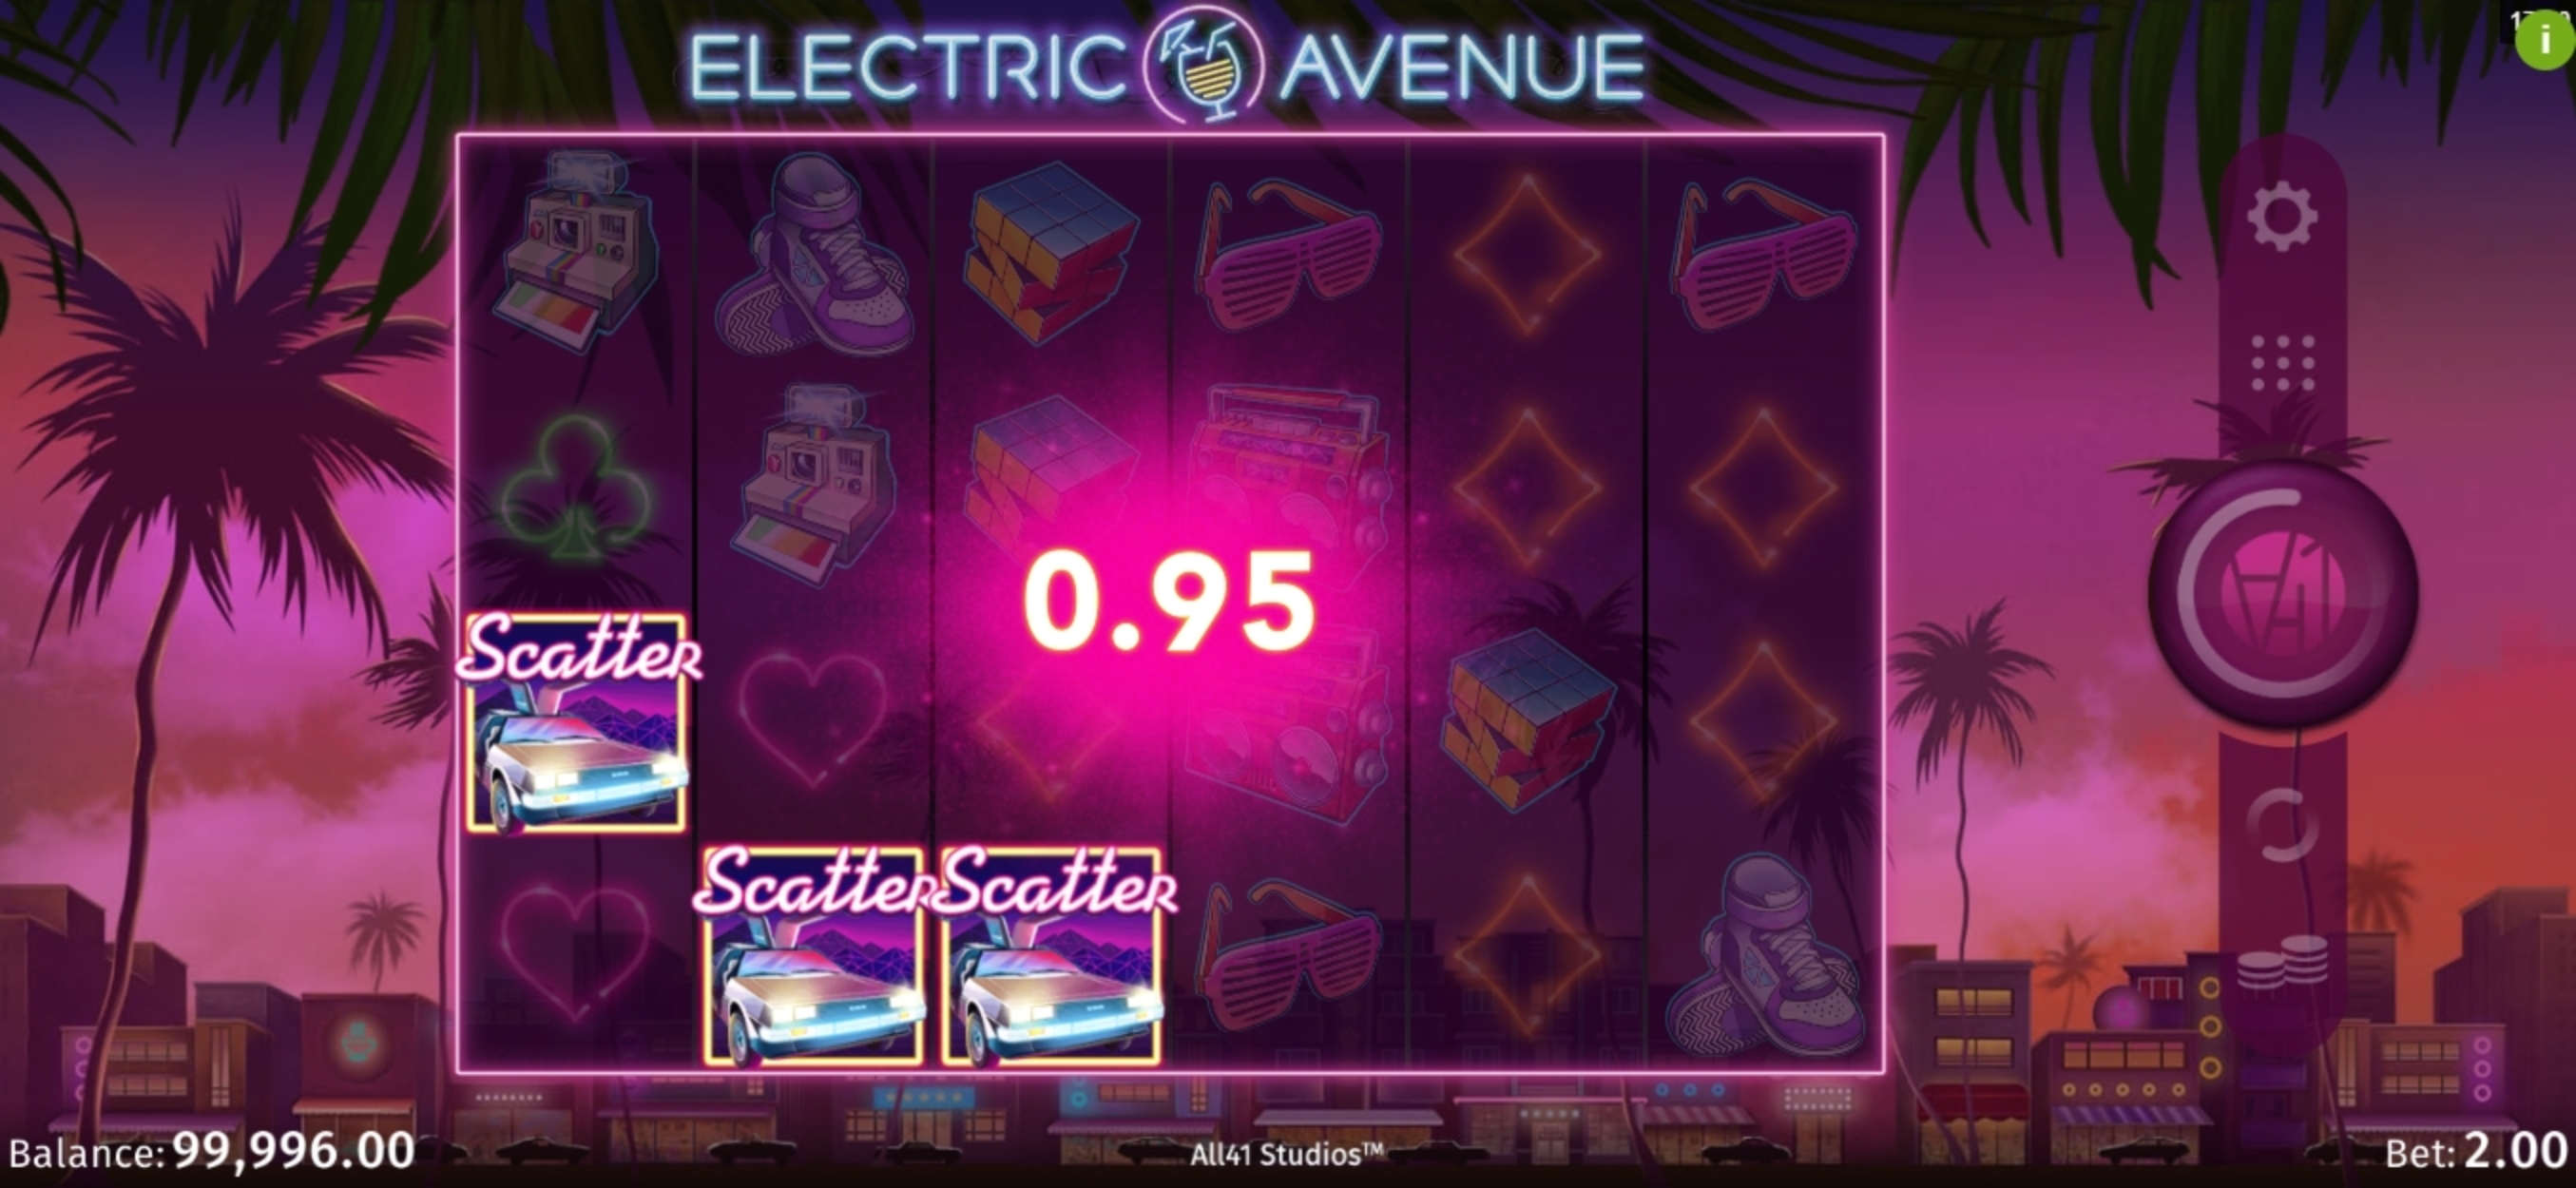 Win Money in Electric Avenue Free Slot Game by All41 Studios